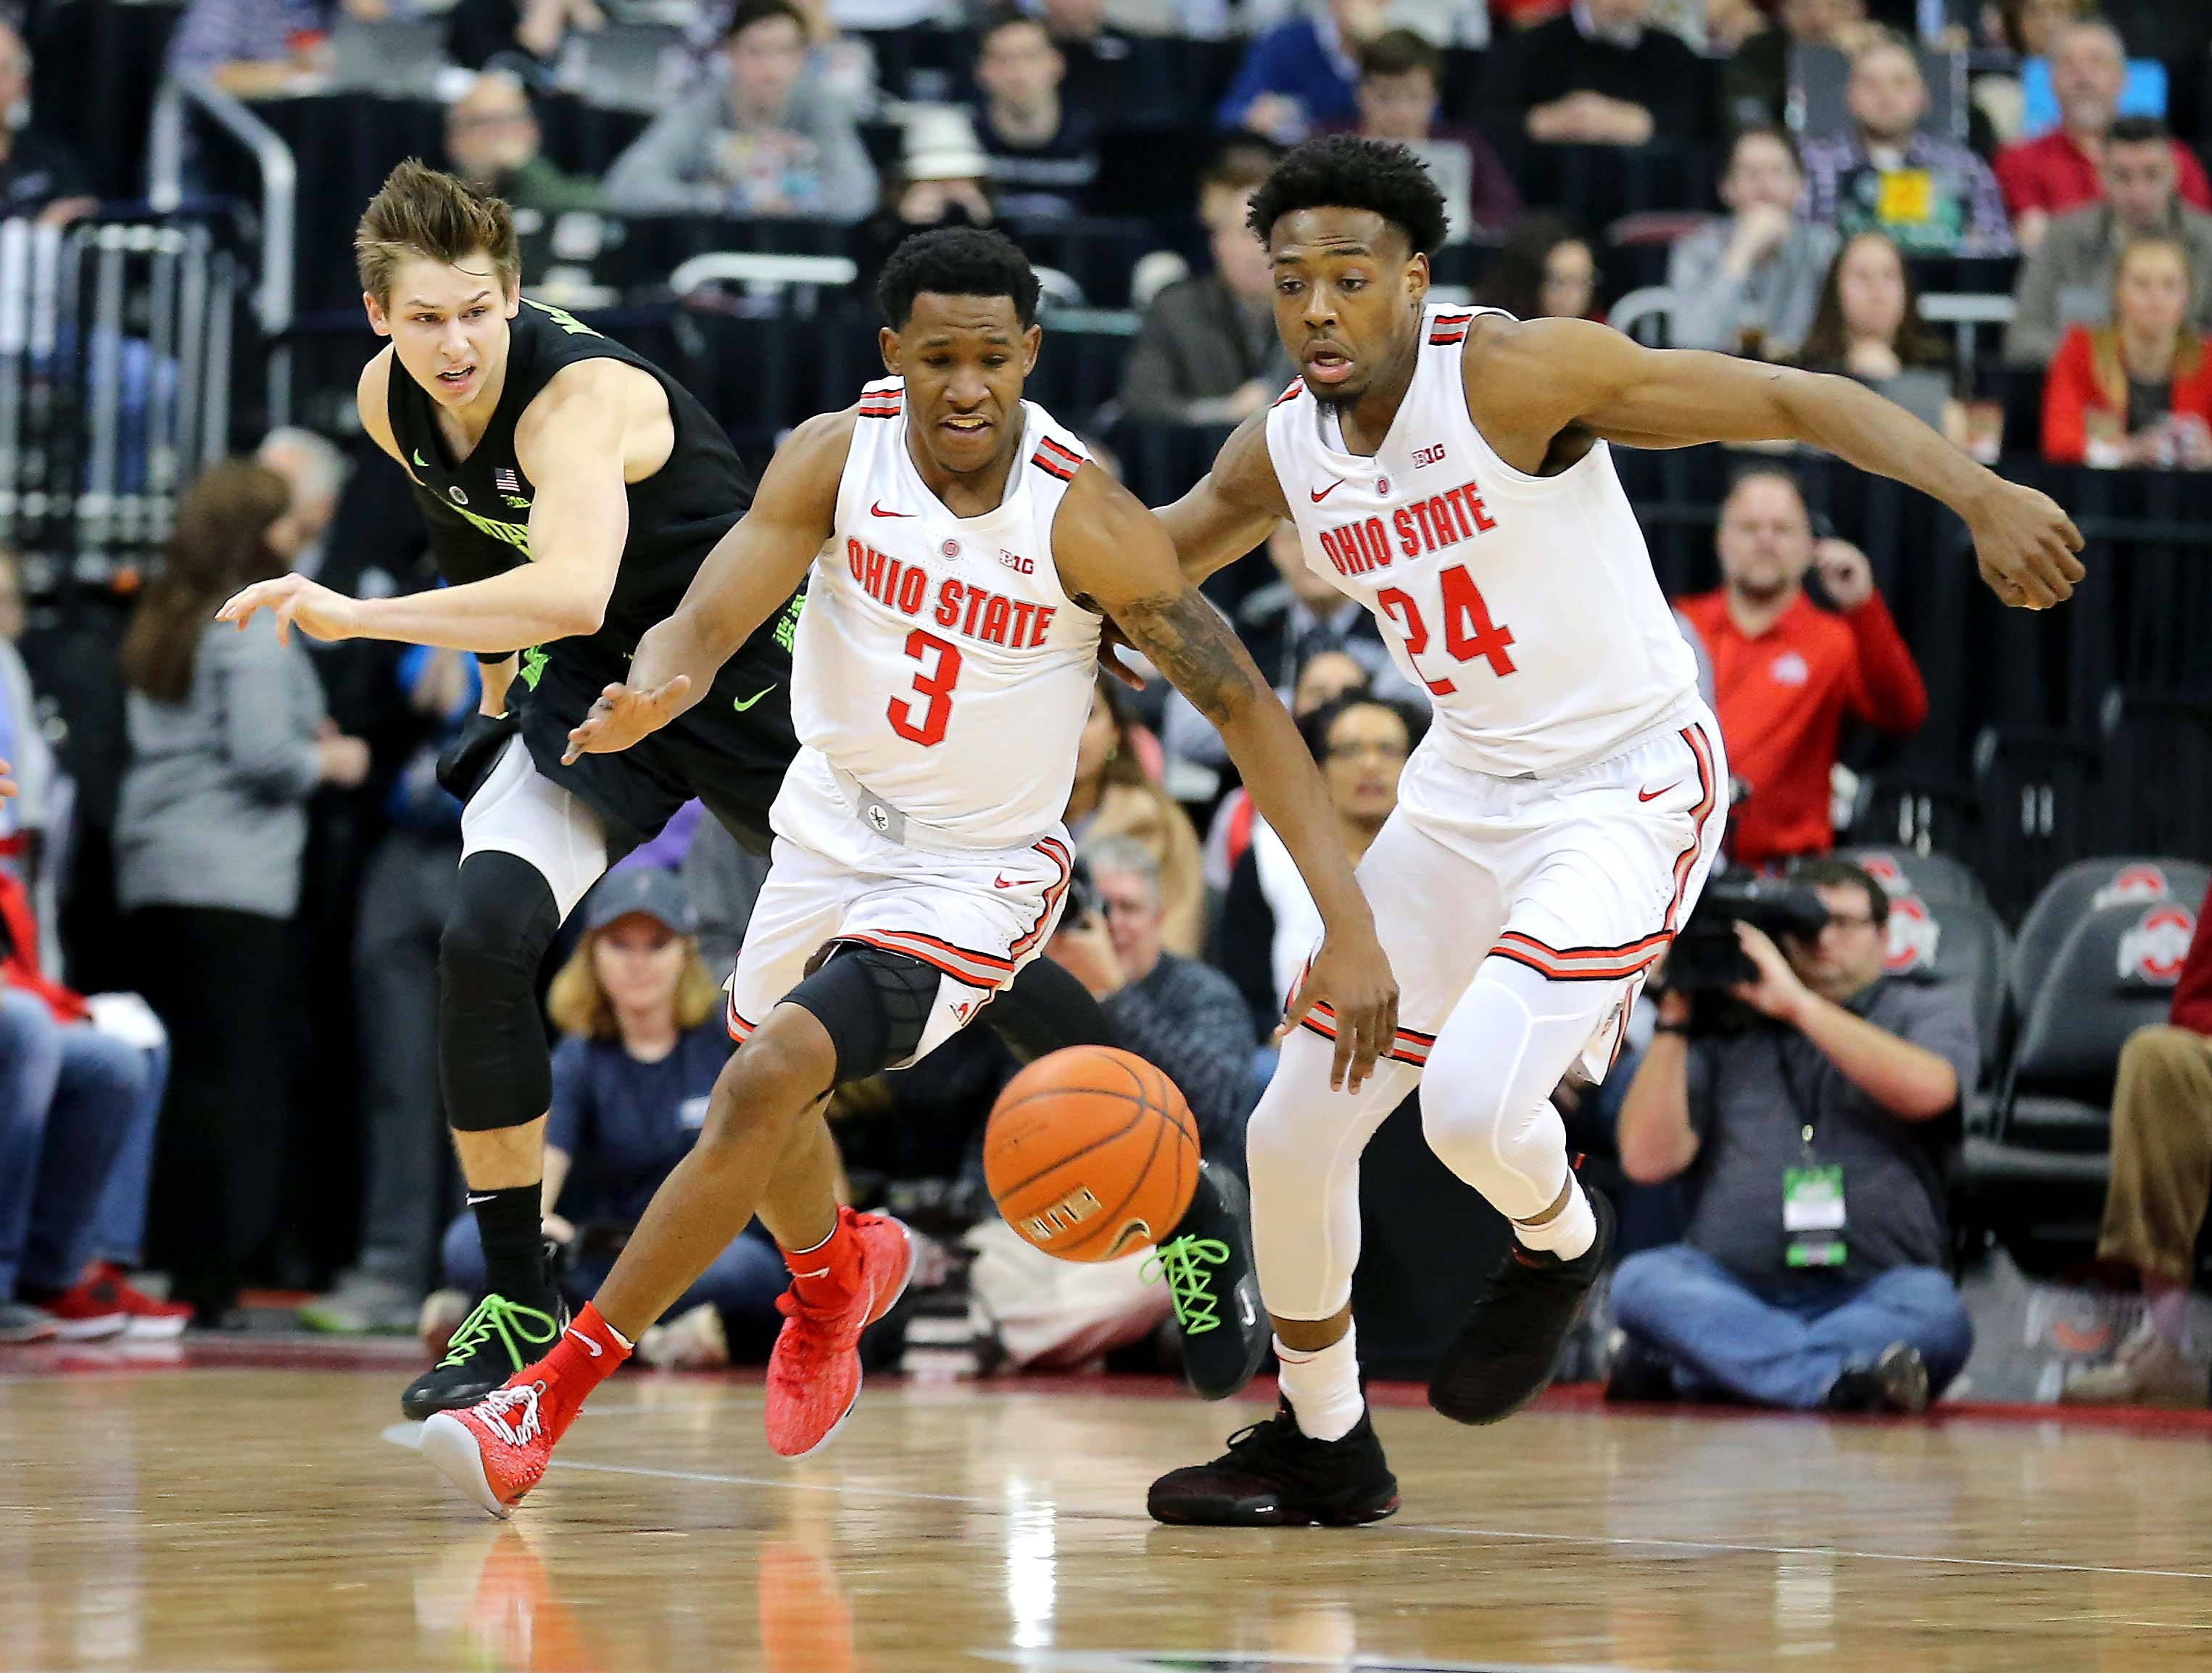 Jan 5, 2019; Columbus, OH, USA; Ohio State Buckeyes guard C.J. Jackson (3) steals from Michigan State Spartans guard Matt McQuaid (20) as Buckeyes forward Andre Wesson (24) looks on during the first half at Value City Arena. Mandatory Credit: Joe Maiorana-USA TODAY Sports